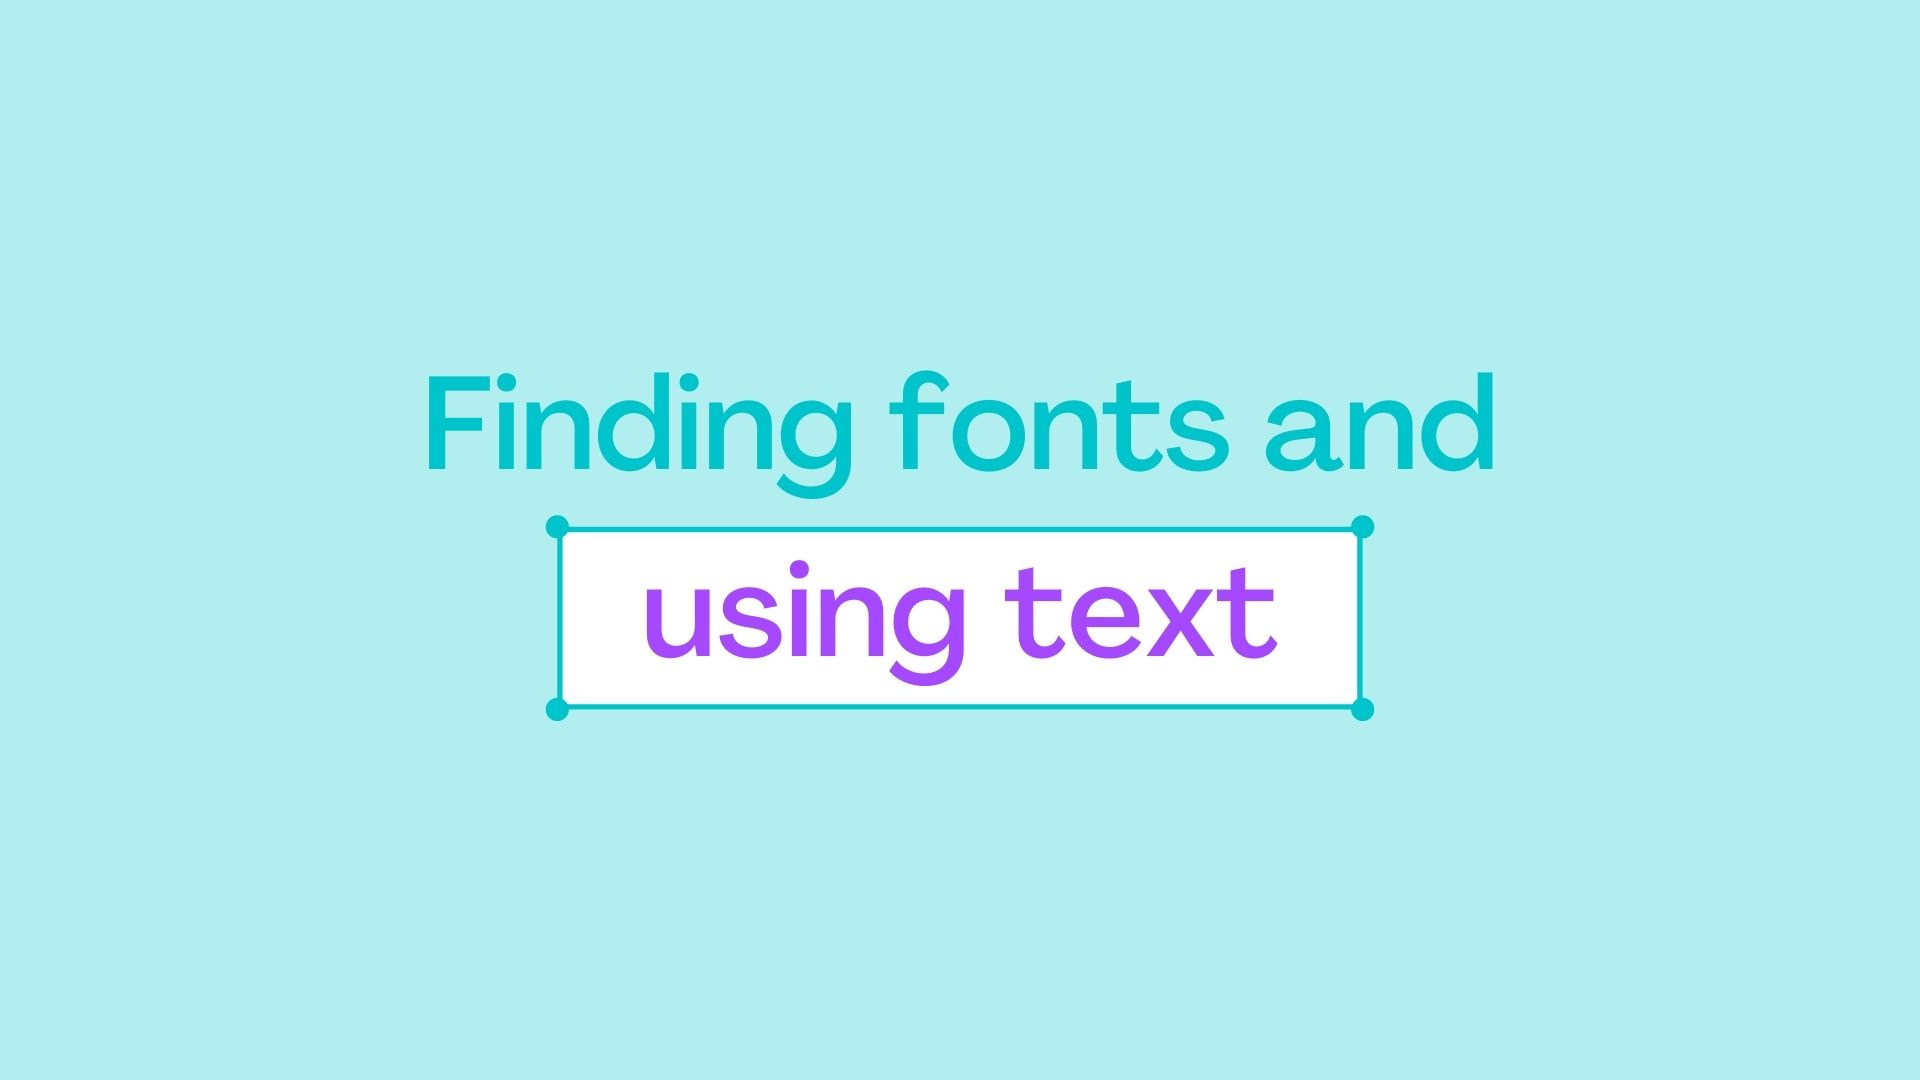 1.6 Finding fonts and using text